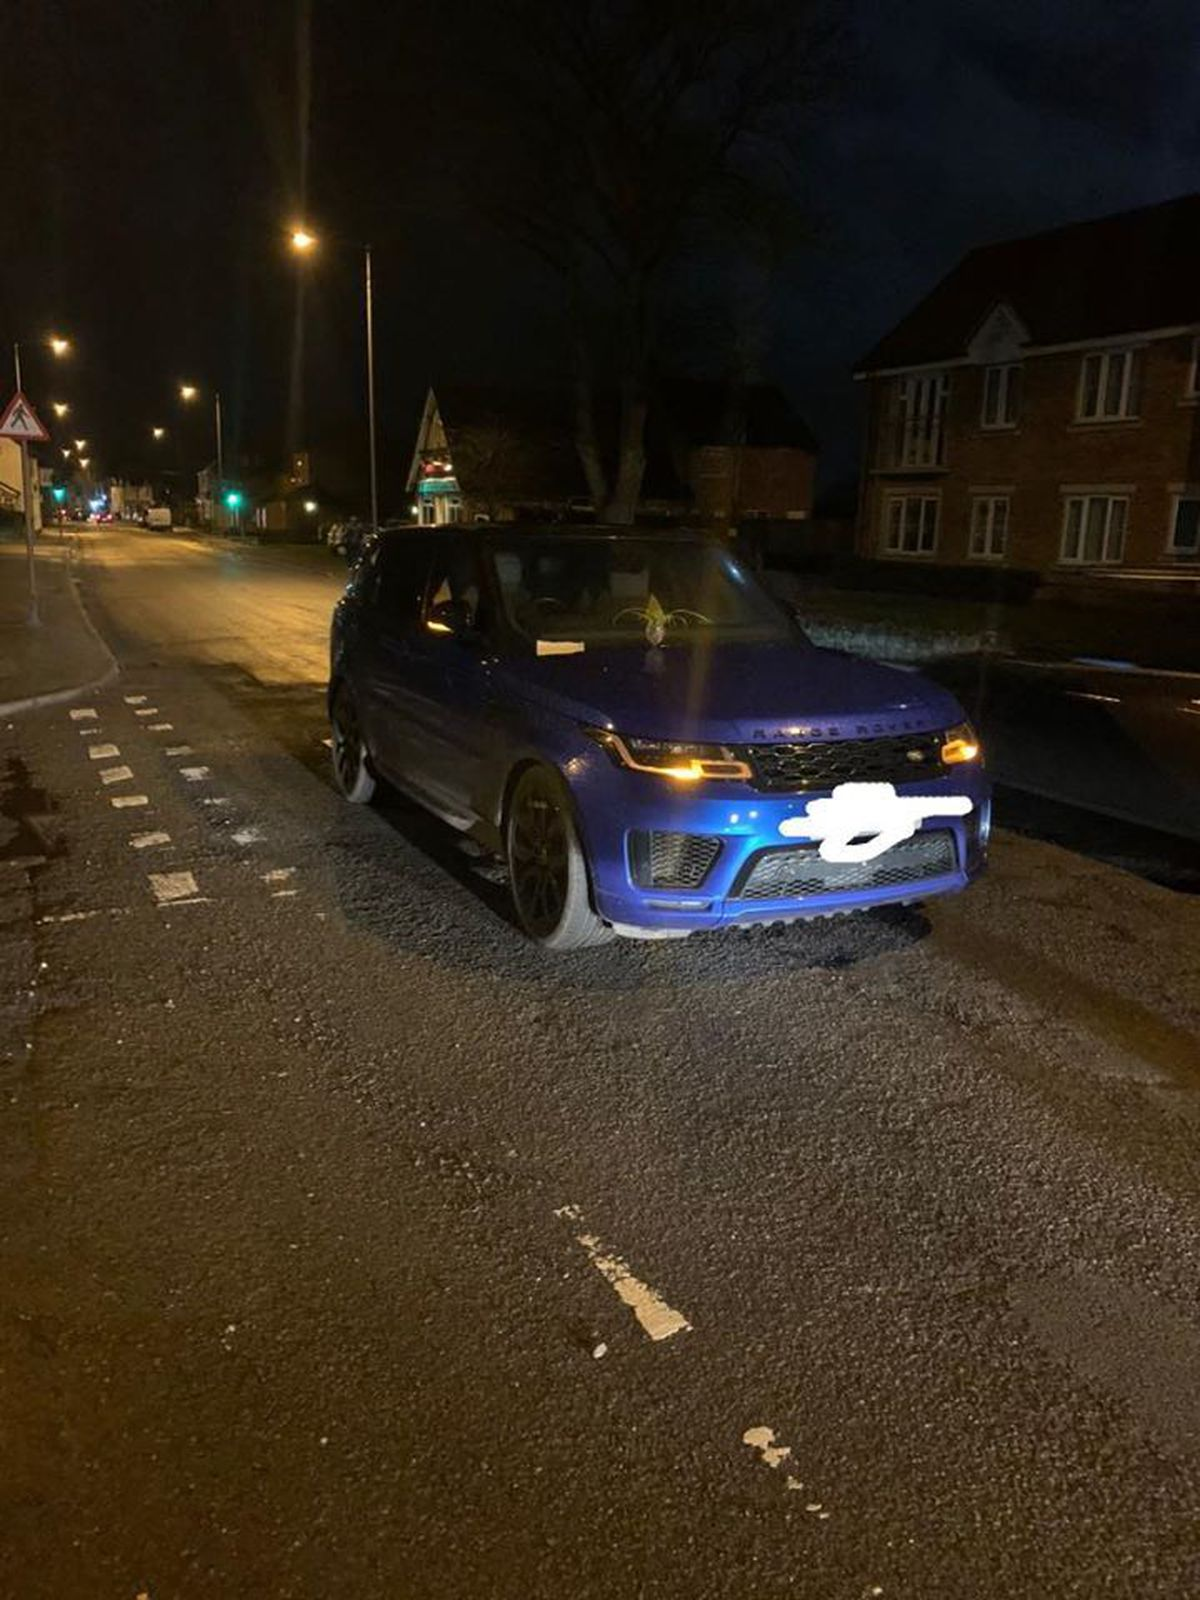 The car was left on Shifnal High Street on the wrong side of the road